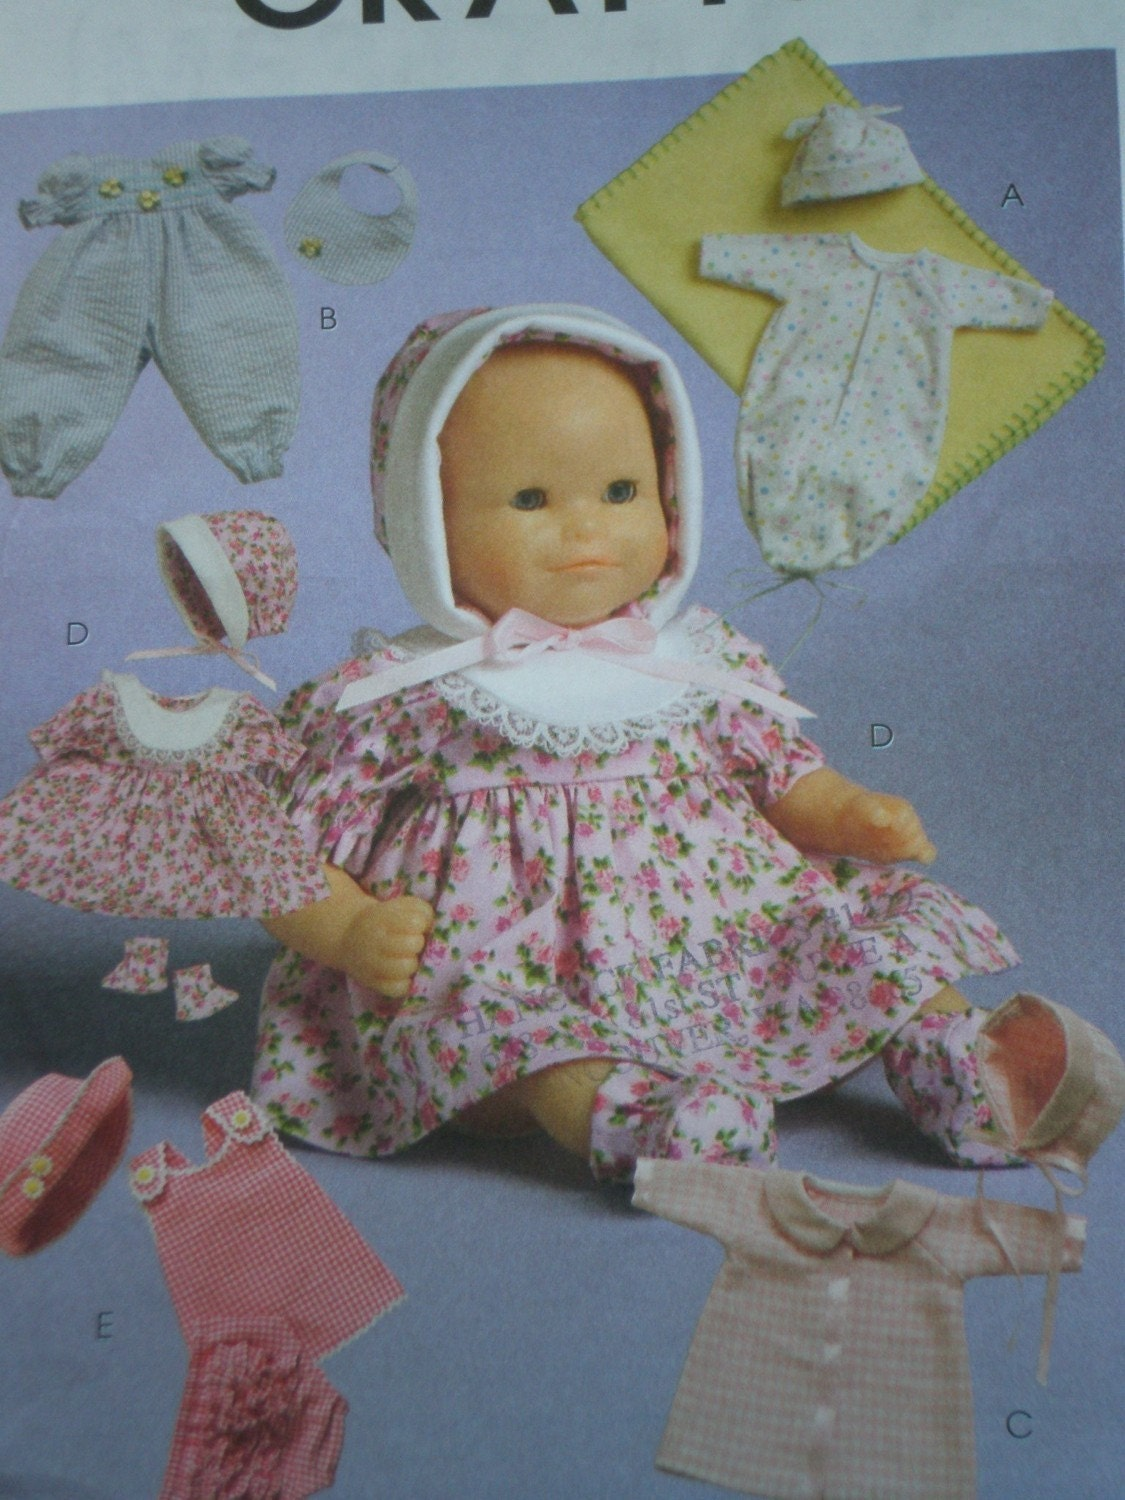 AMERICAN GIRL DOLL CLOTHES PATTERN MCCALLS 5347 BITTY BABY